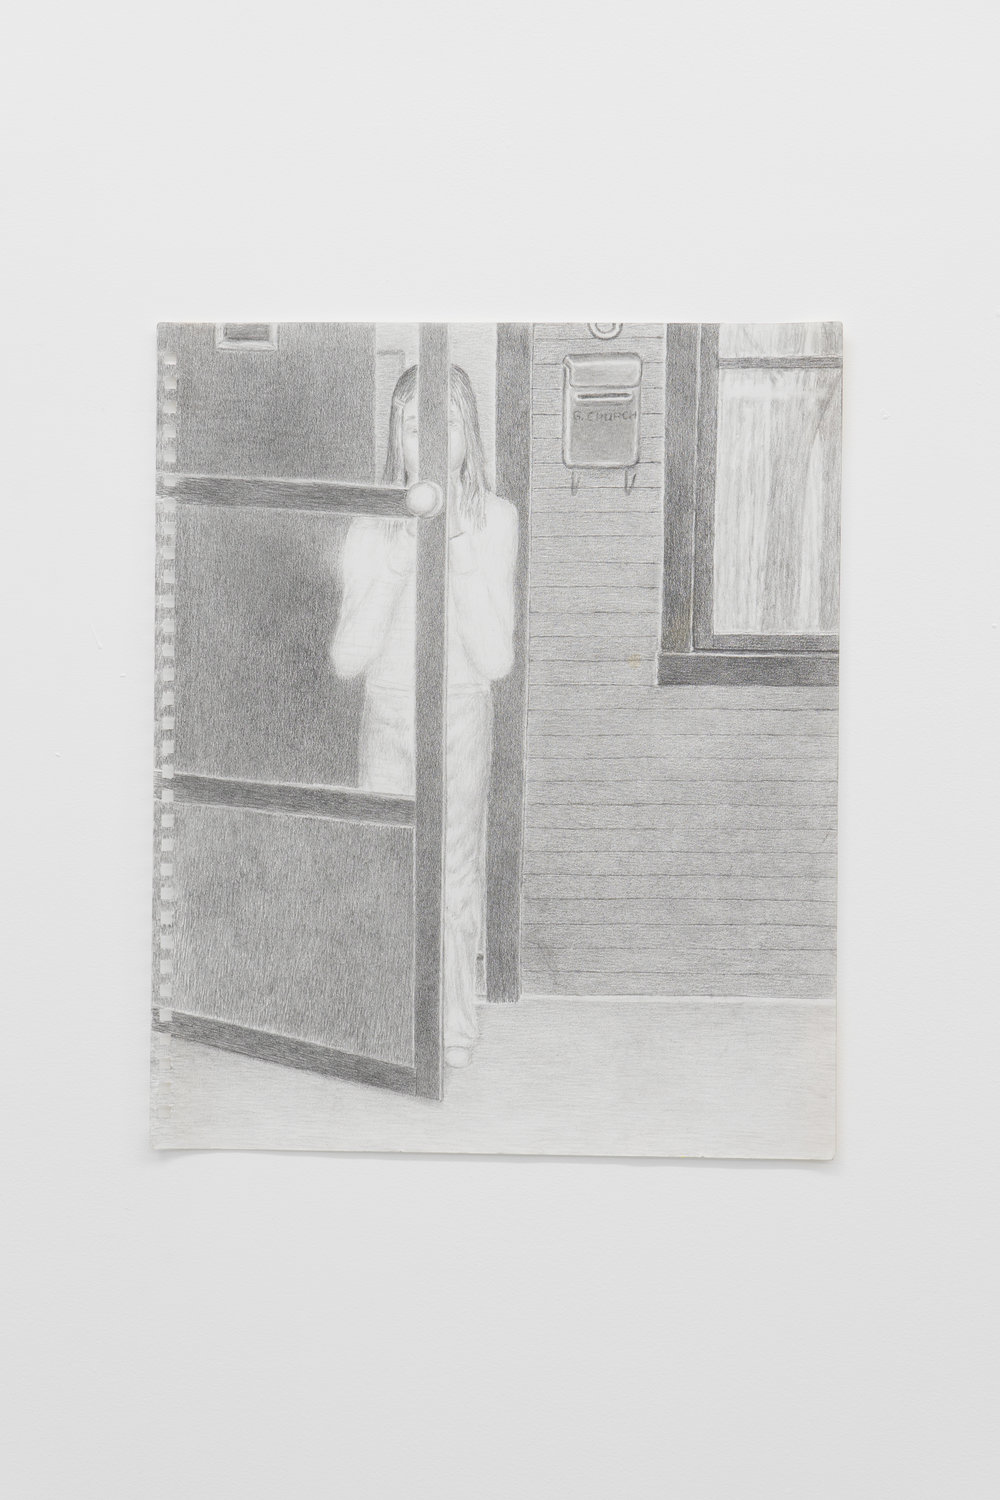 Guy Church,  The Great Outside World,  2017  Graphite on paper, 42 x 33cm  Image credit: Ruben Bull-milne